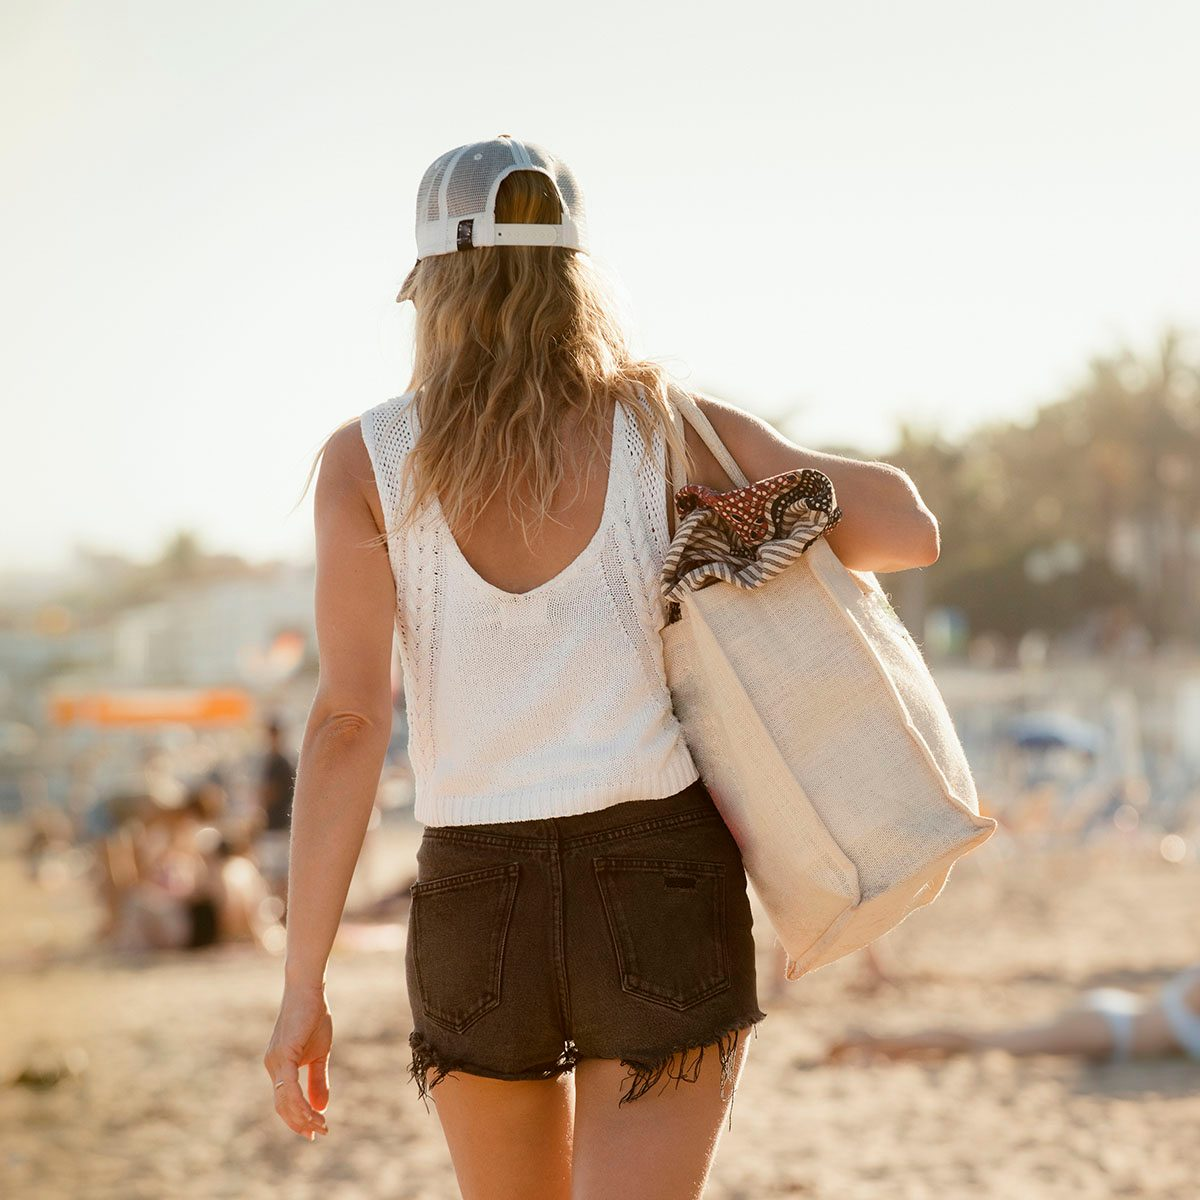 Woman walking along beach, rear view, Sitges, Catalonia, Spain uses for reusable bags